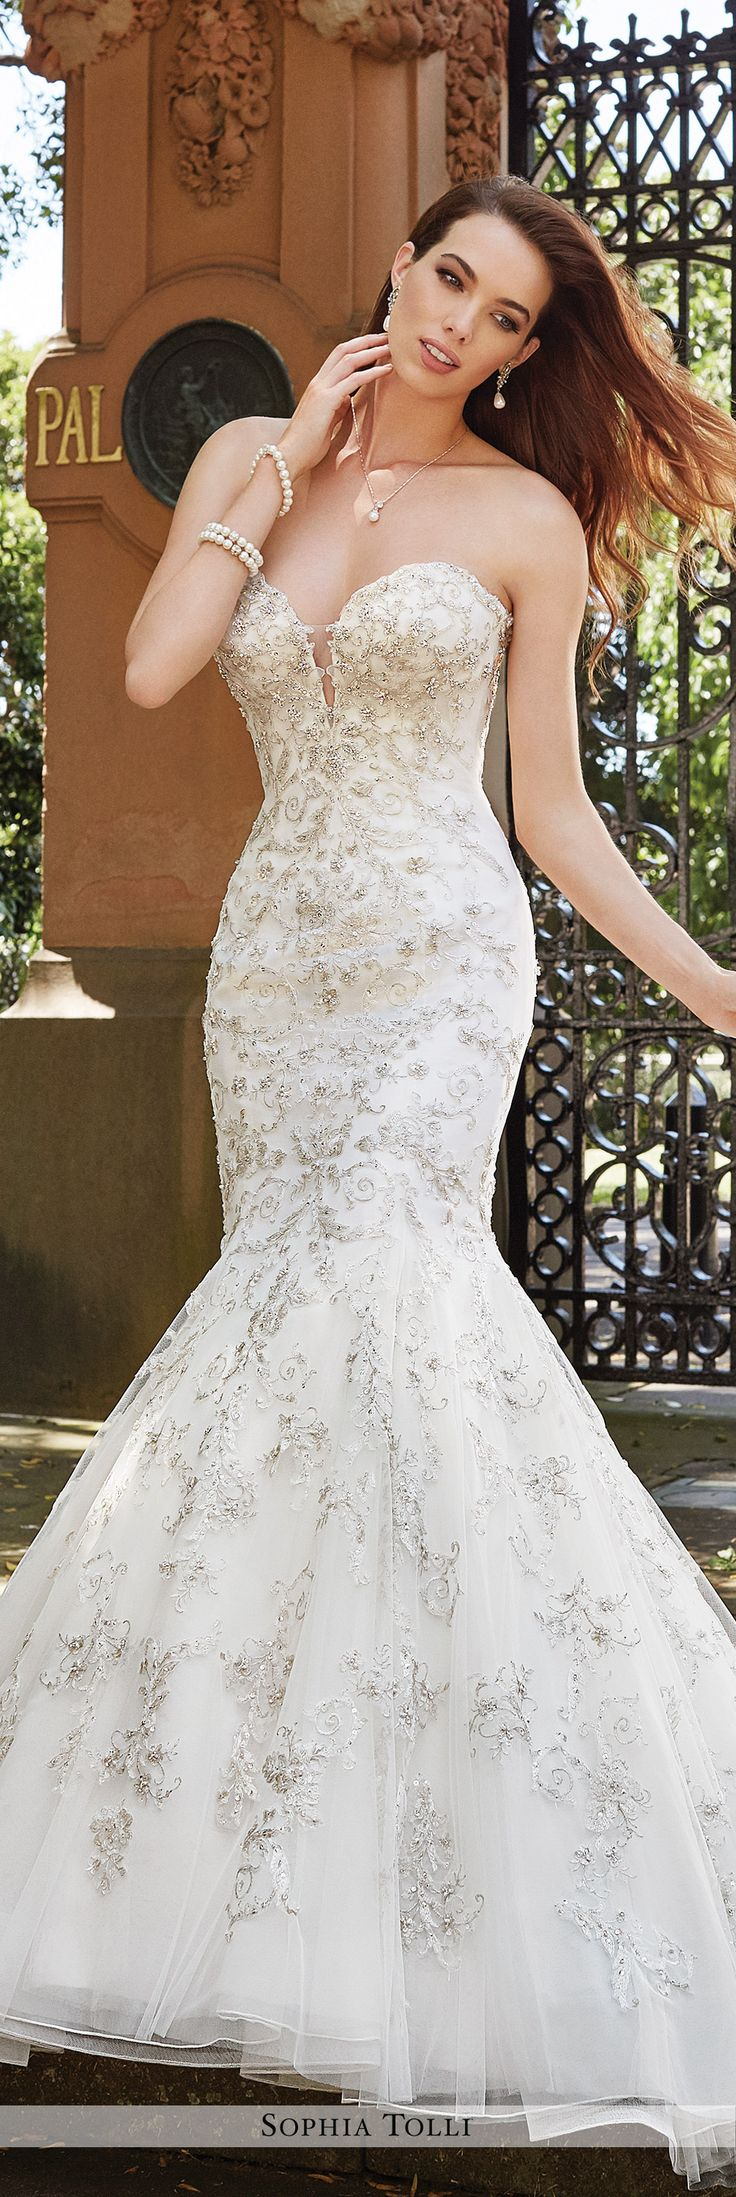 Sophia Tolli - Y21659 Palermo - Strapless soft tulle trumpet gown with crystal hand-beaded lace appliqués, deep sweetheart neckline with sheer panel, dropped waistline, back corset, voluminous back skirt with chapel train. Removable spaghetti and halter straps included.Also available with a back zipper trimmed with diamante buttons and loops as Y21659ZB.Sizes: 0 - 28Colors: Ivory/Pewter, Ivory, White